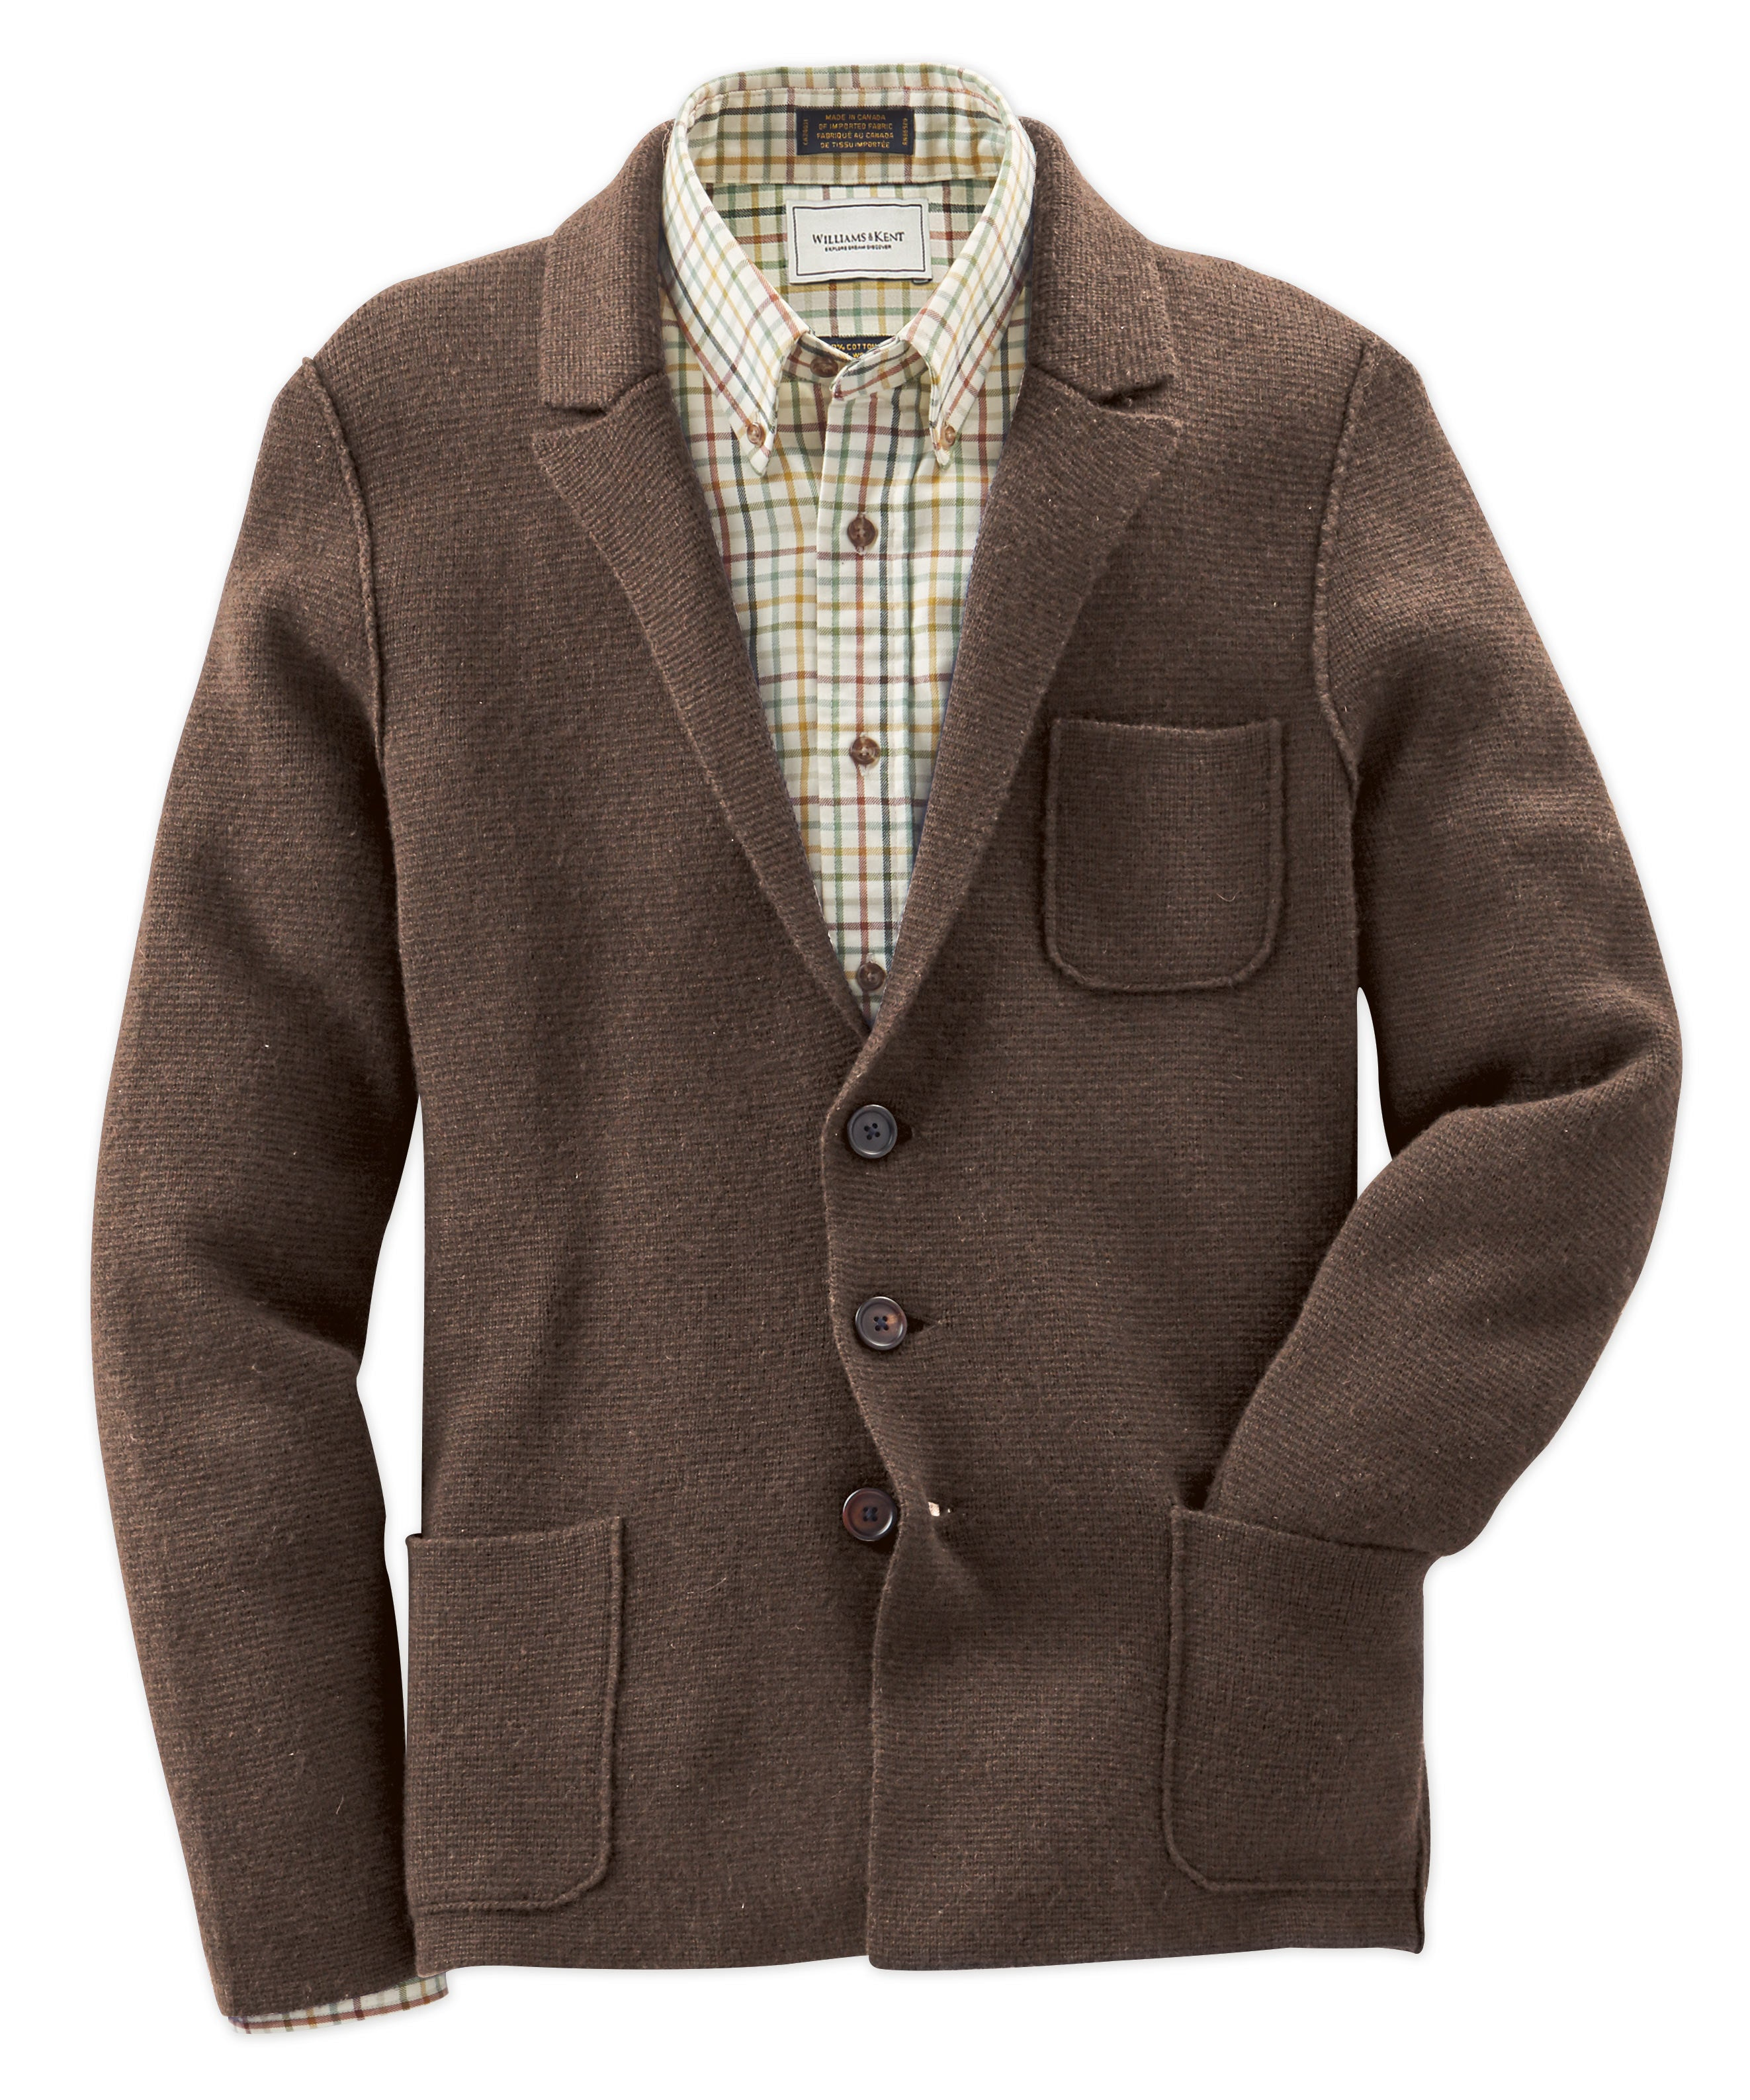 Alan Paine Wendover Wool-Cashmere Sweater Jacket - Bark